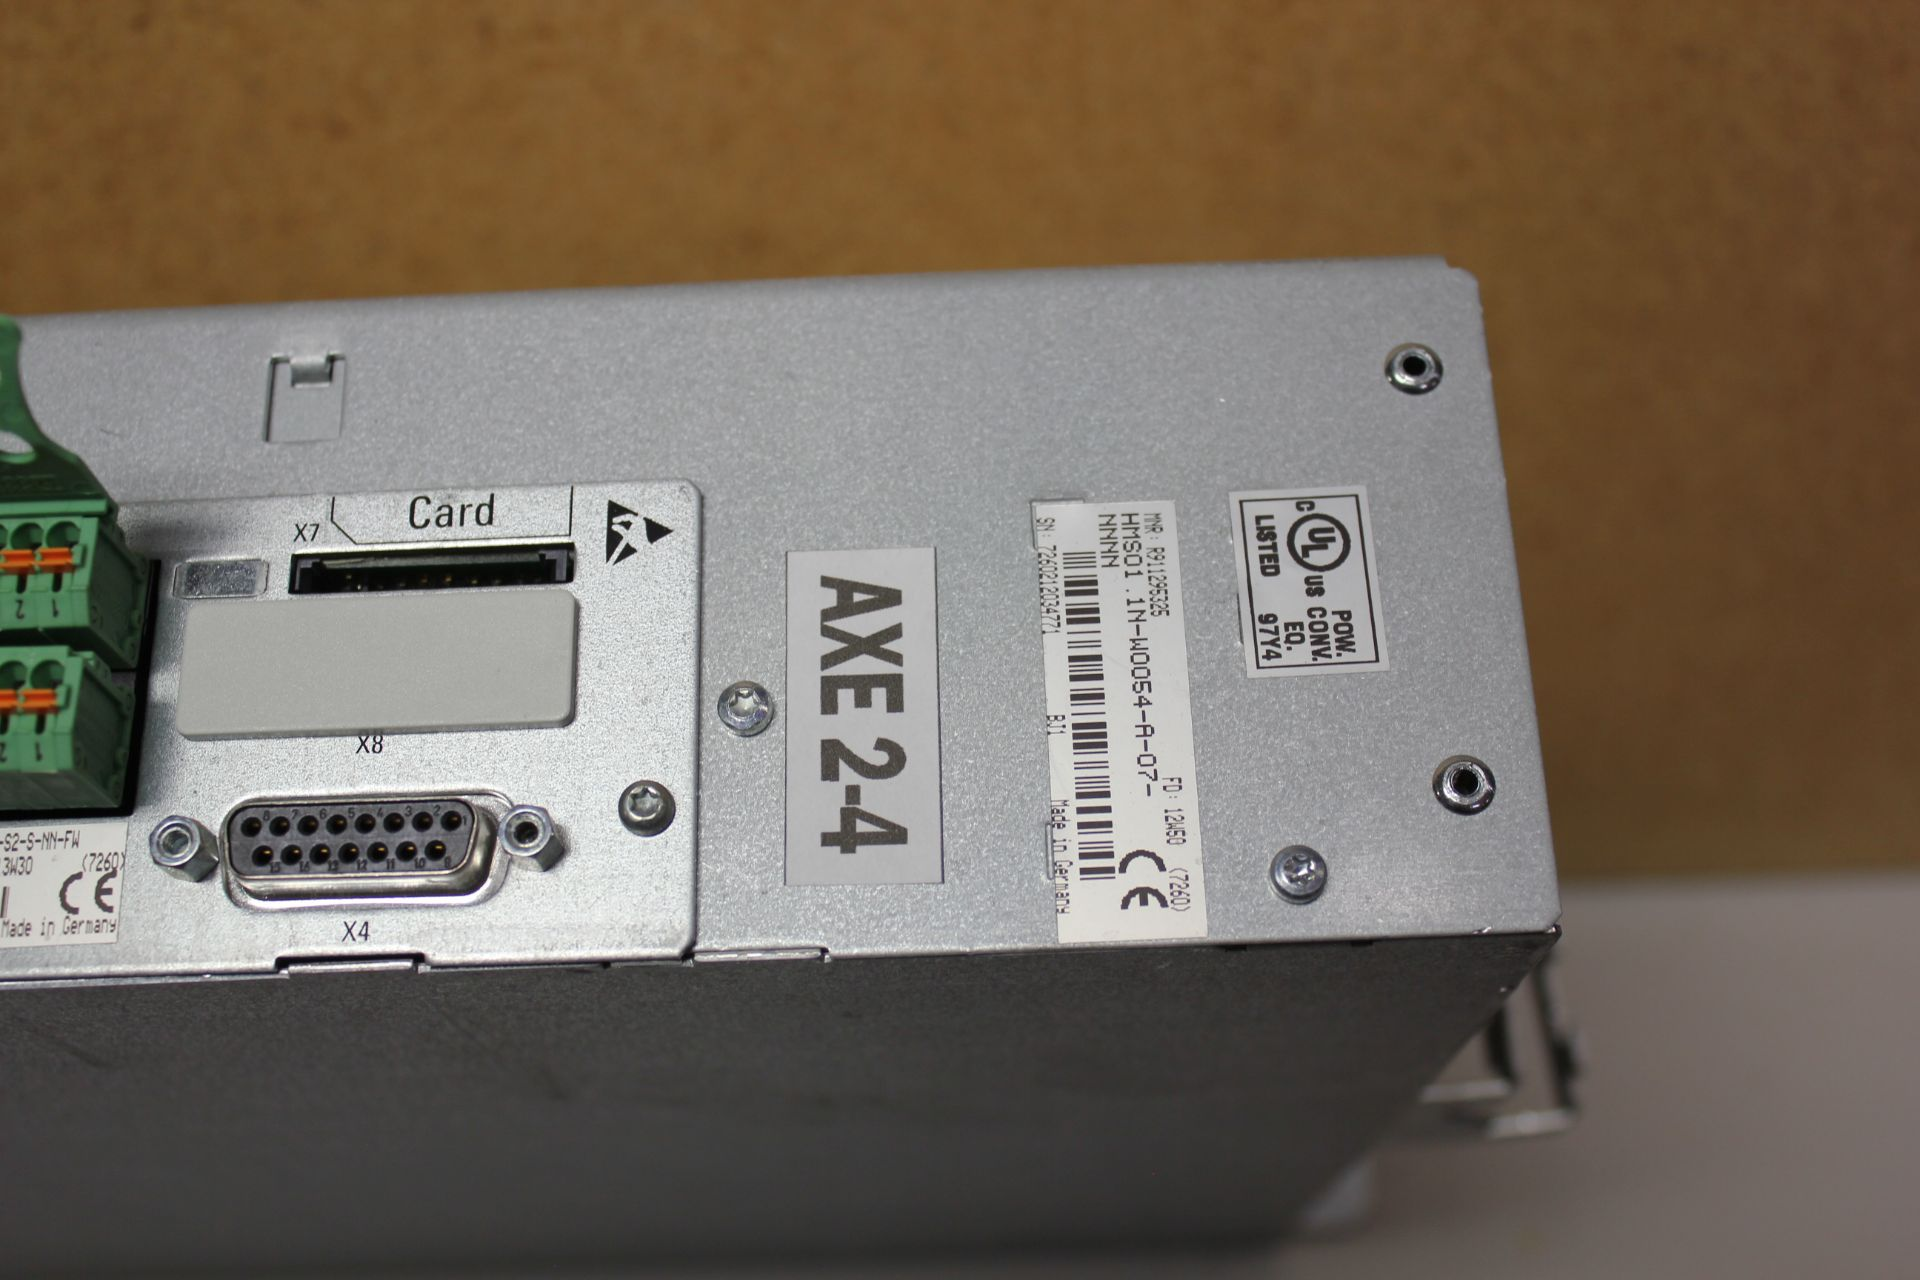 Lot 183 - REXROTH INDRADRIVE M SINGLE AXIS INVERTER WITH SERCOS MODULE